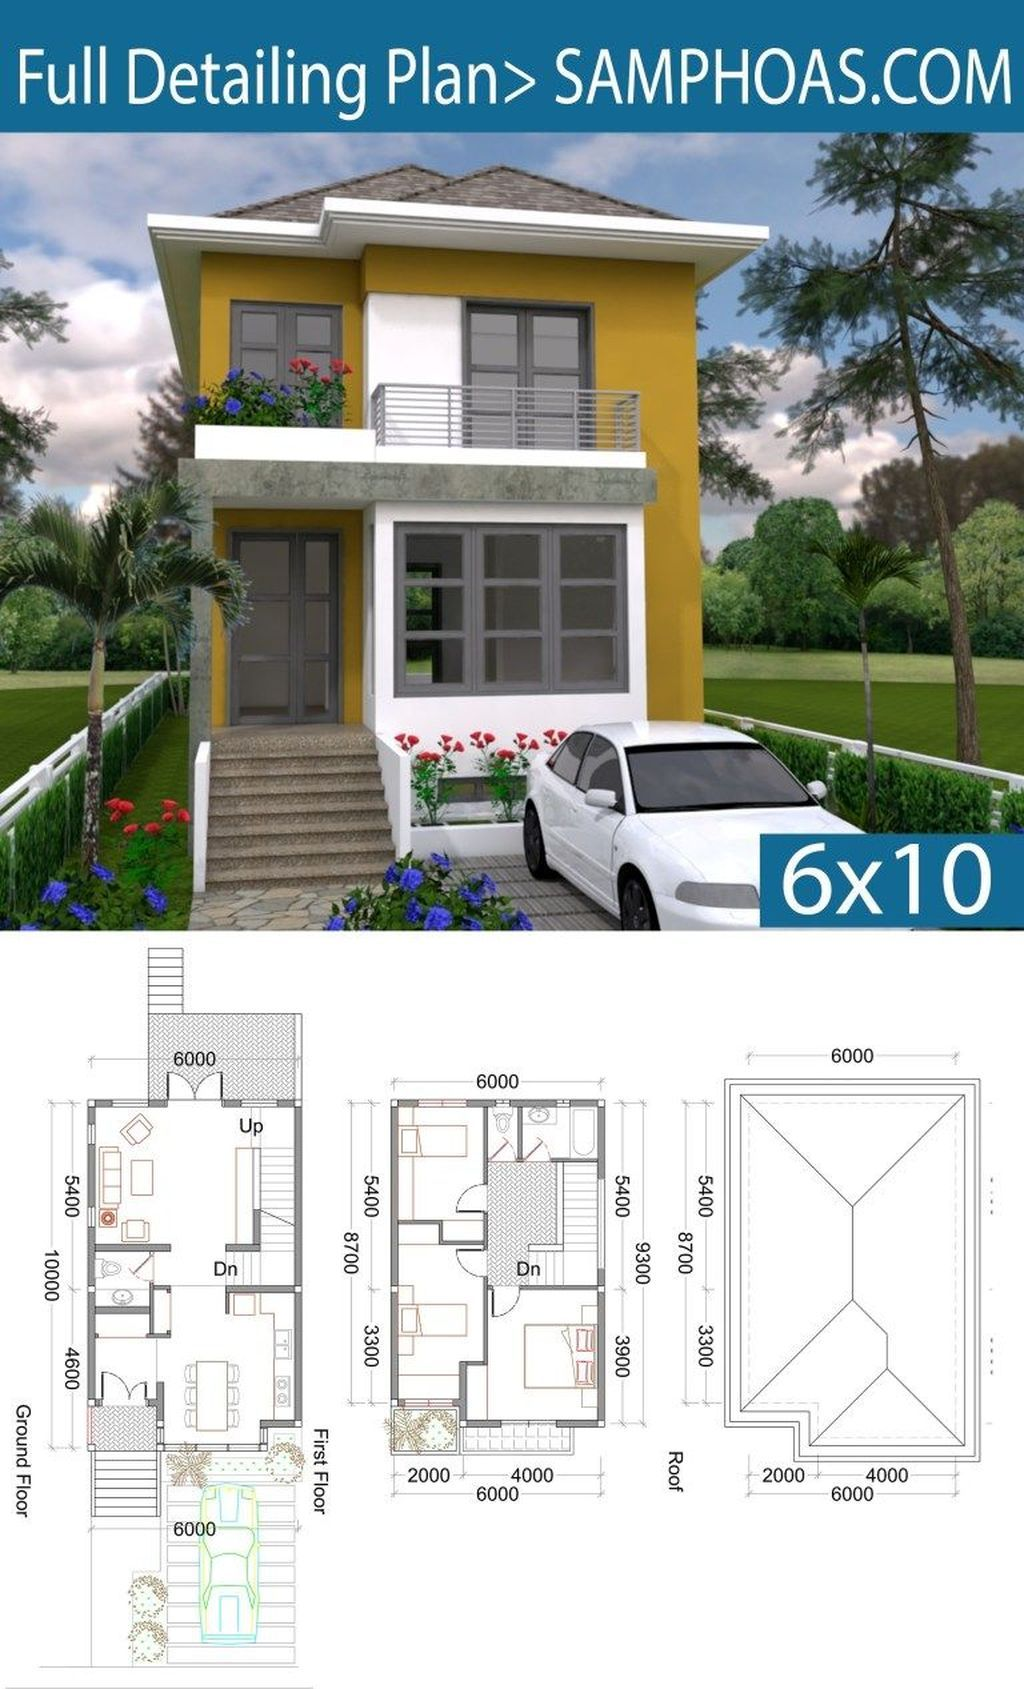 35 Lovely Small Home Design Ideas With Two Floor That Have Minimalist Architecture Architectural House Plans Home Design Plan Small House Design